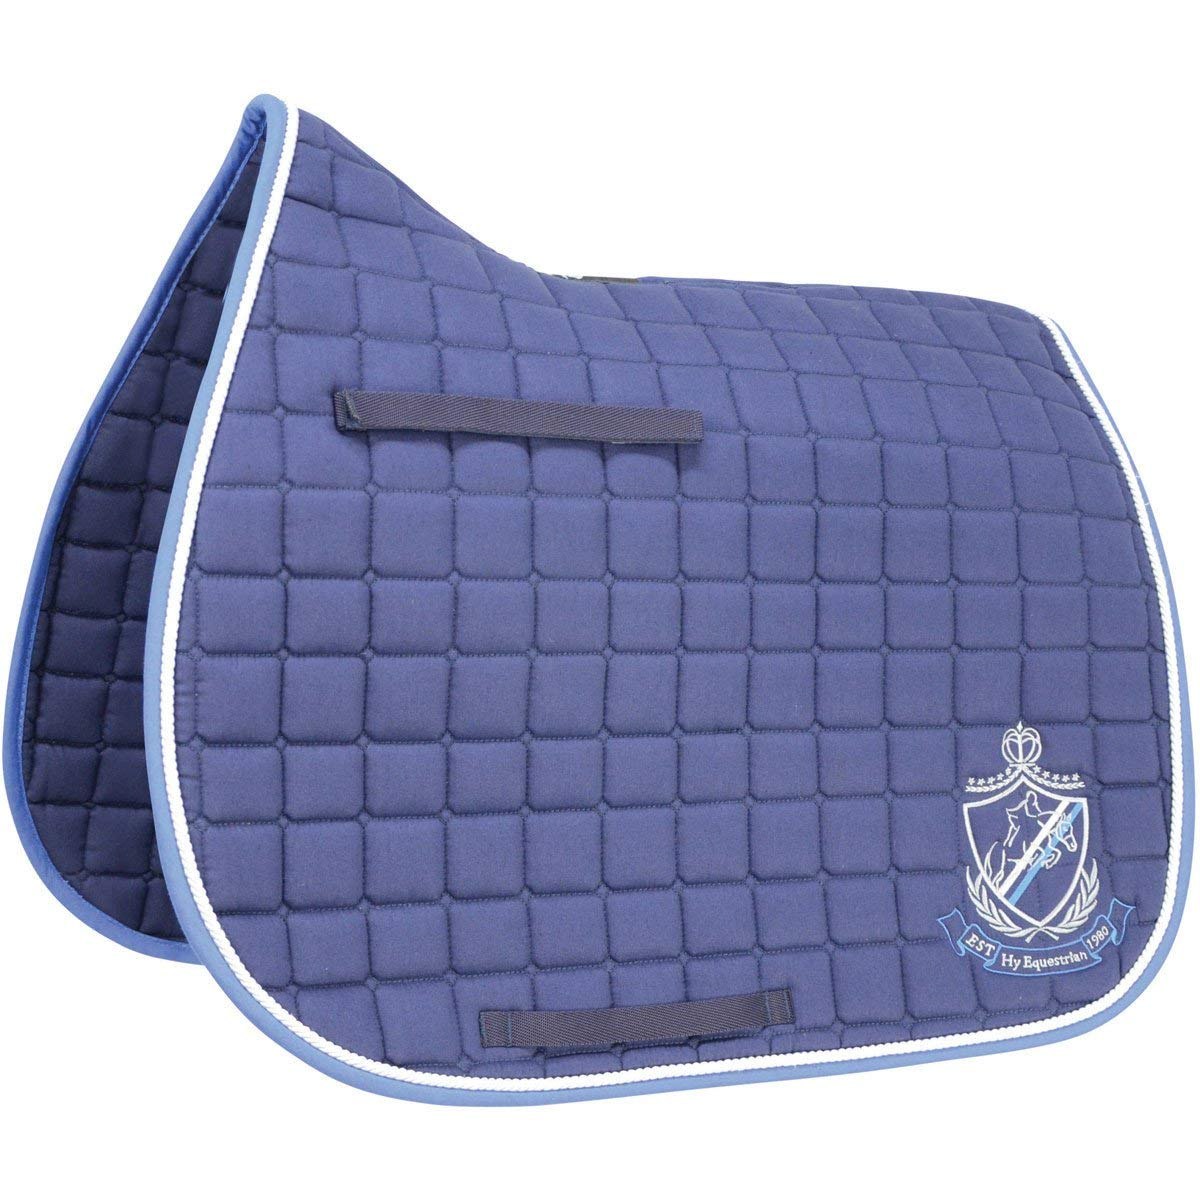 HySpeed Equestrian Saddle Pad Pony Navy bluee